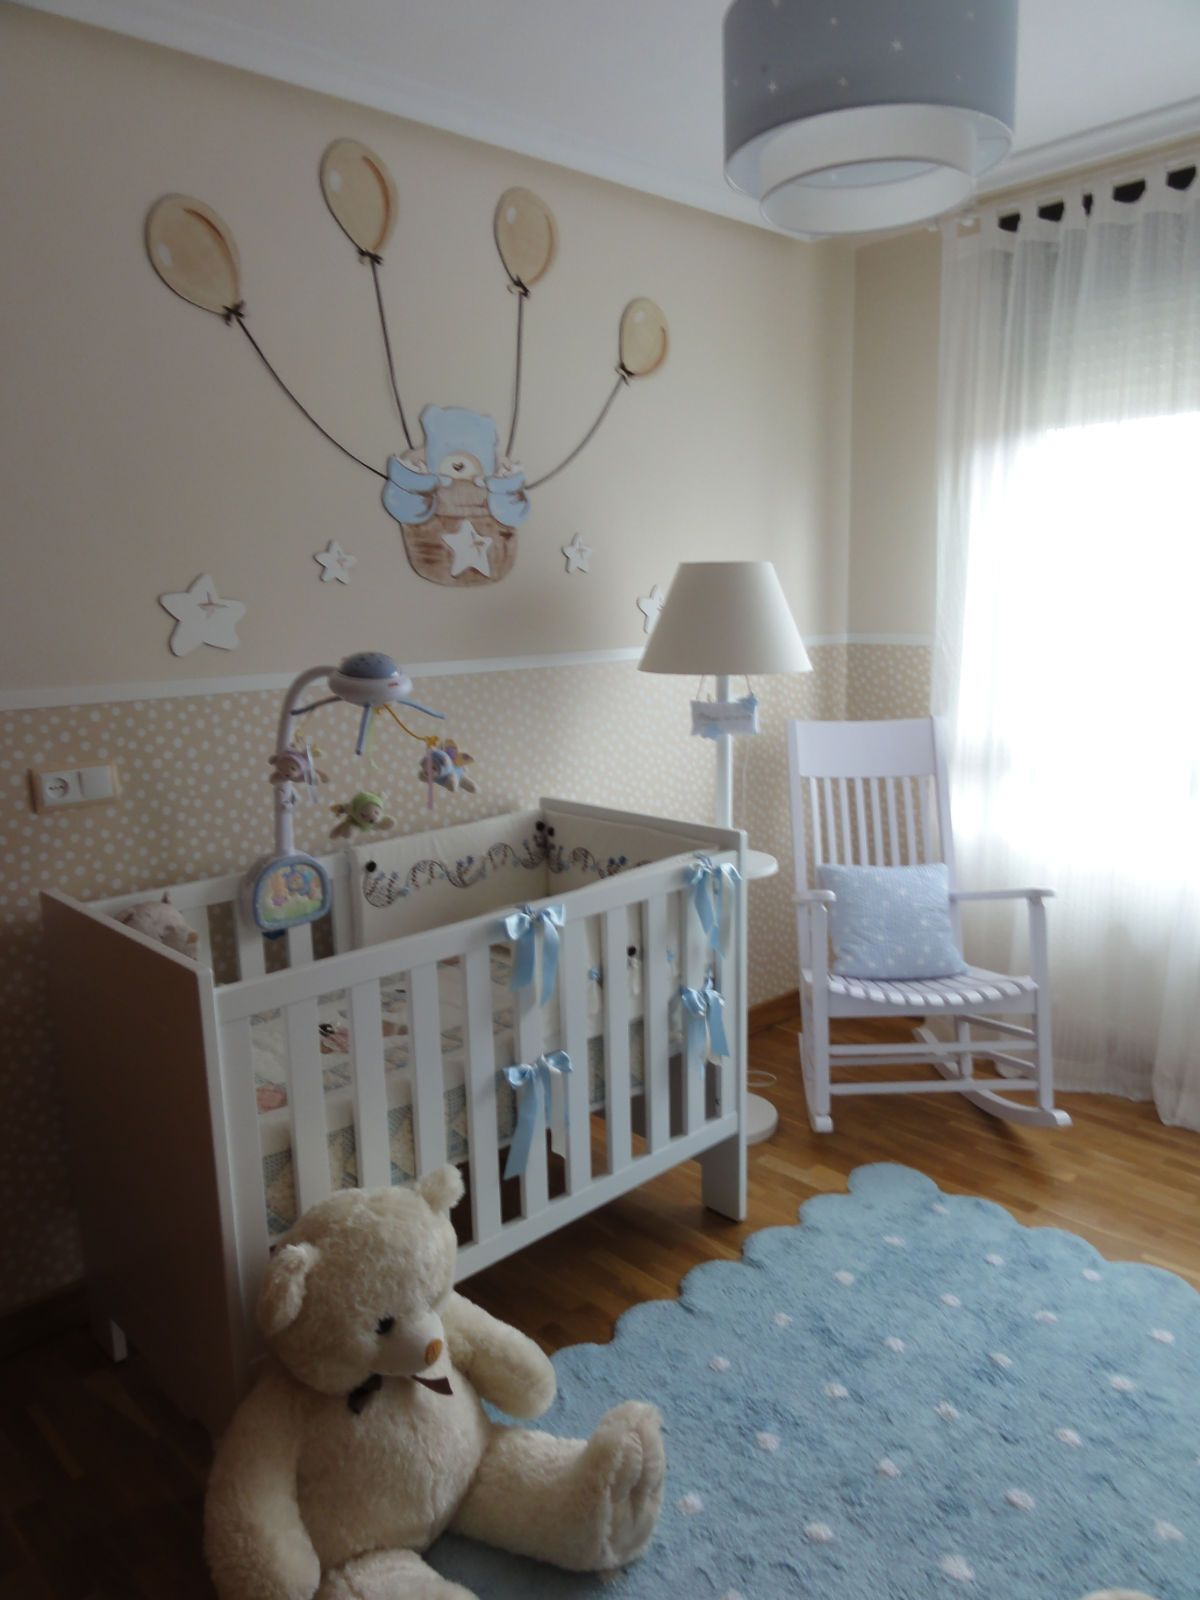 Distribuci n dormitorio beb decorar tu casa es facil y - Decoracion dormitorio bebe ...